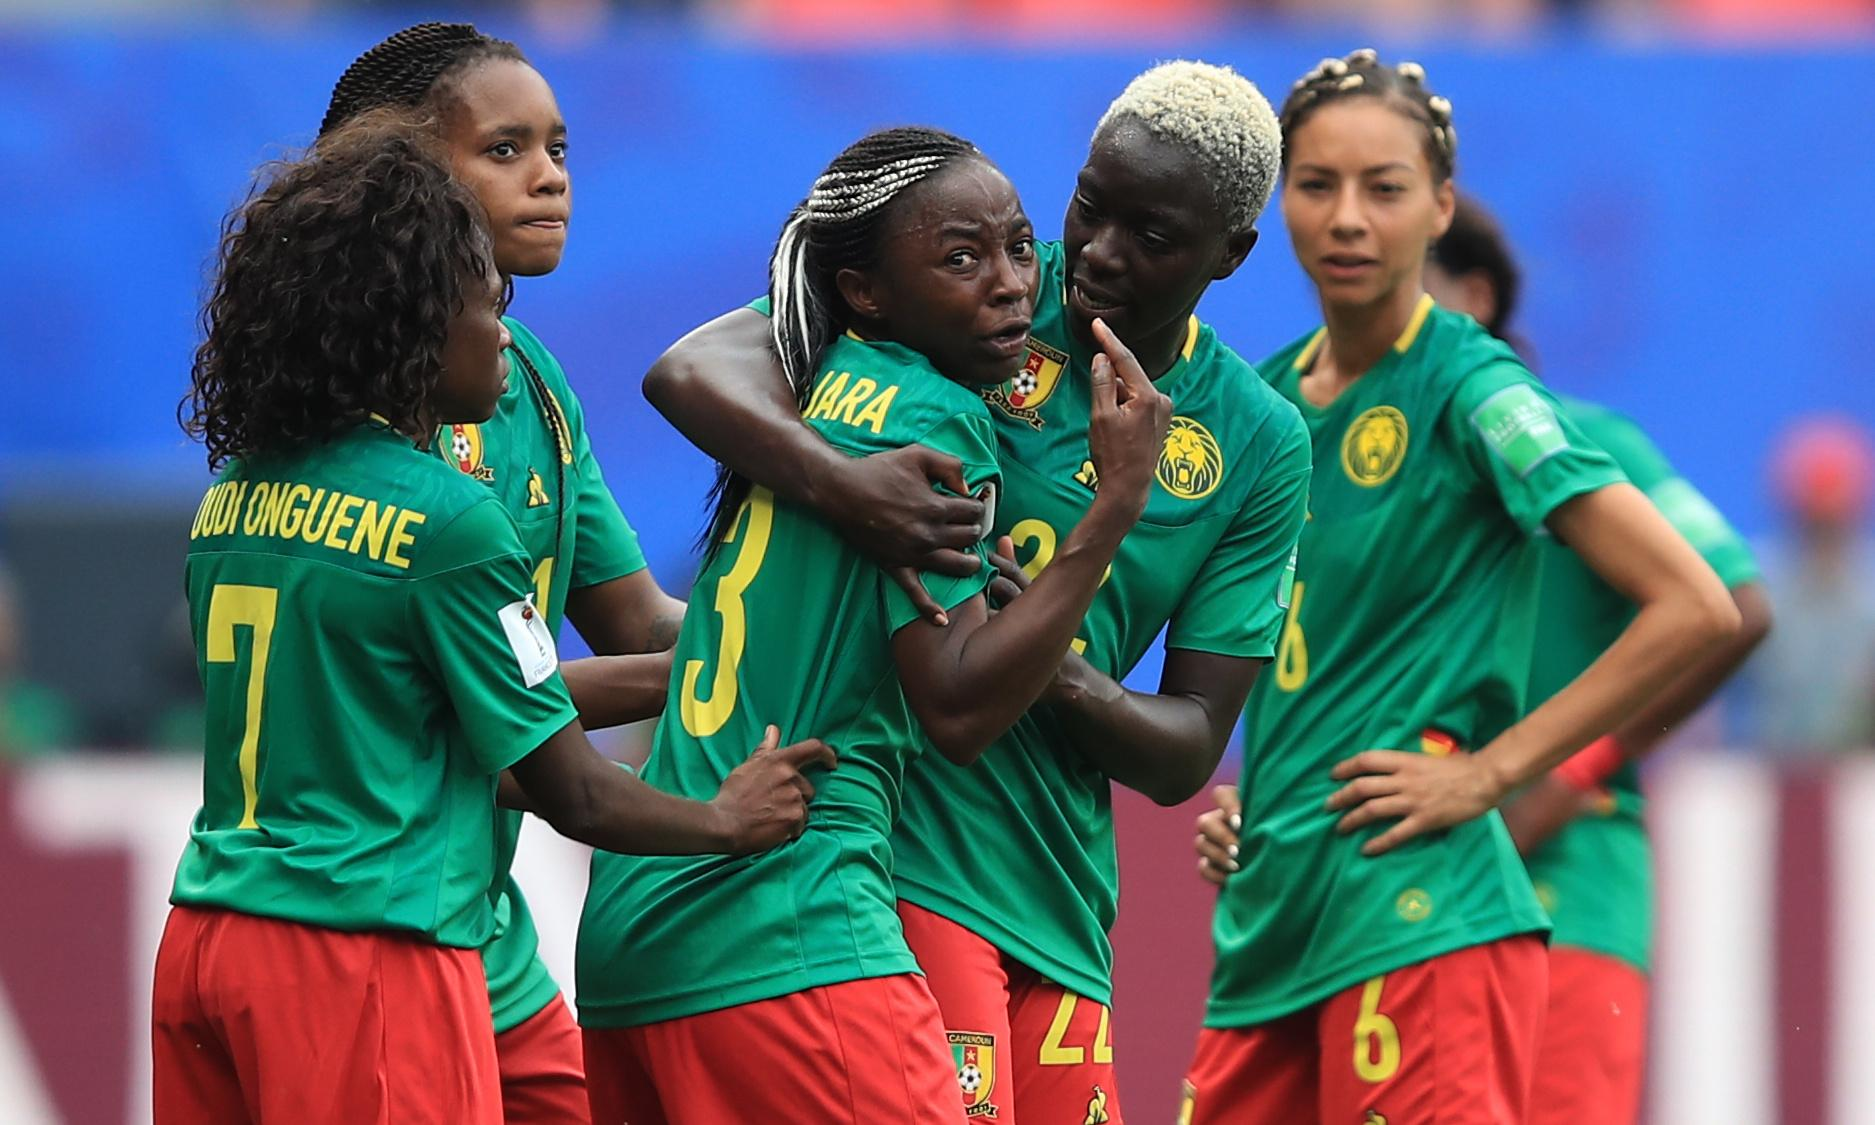 The Cameroonian meltdown was unimpressive, but context is important